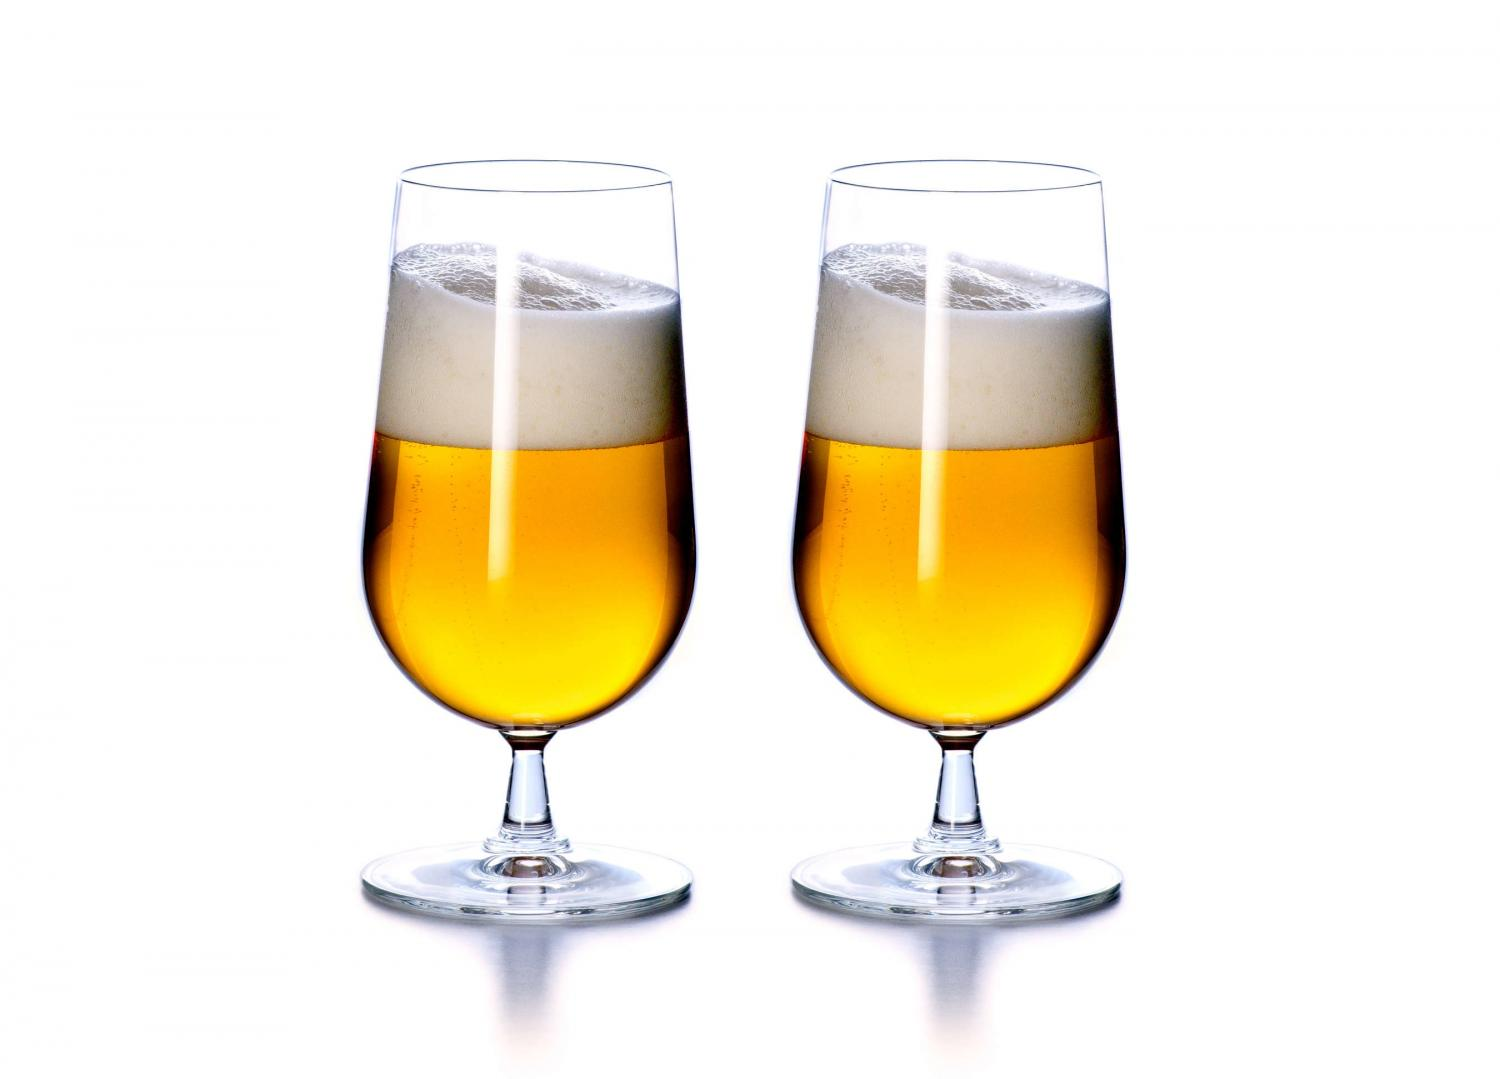 Rosendahl, Ölglas 50 cl, Grand Cru (2-pack)